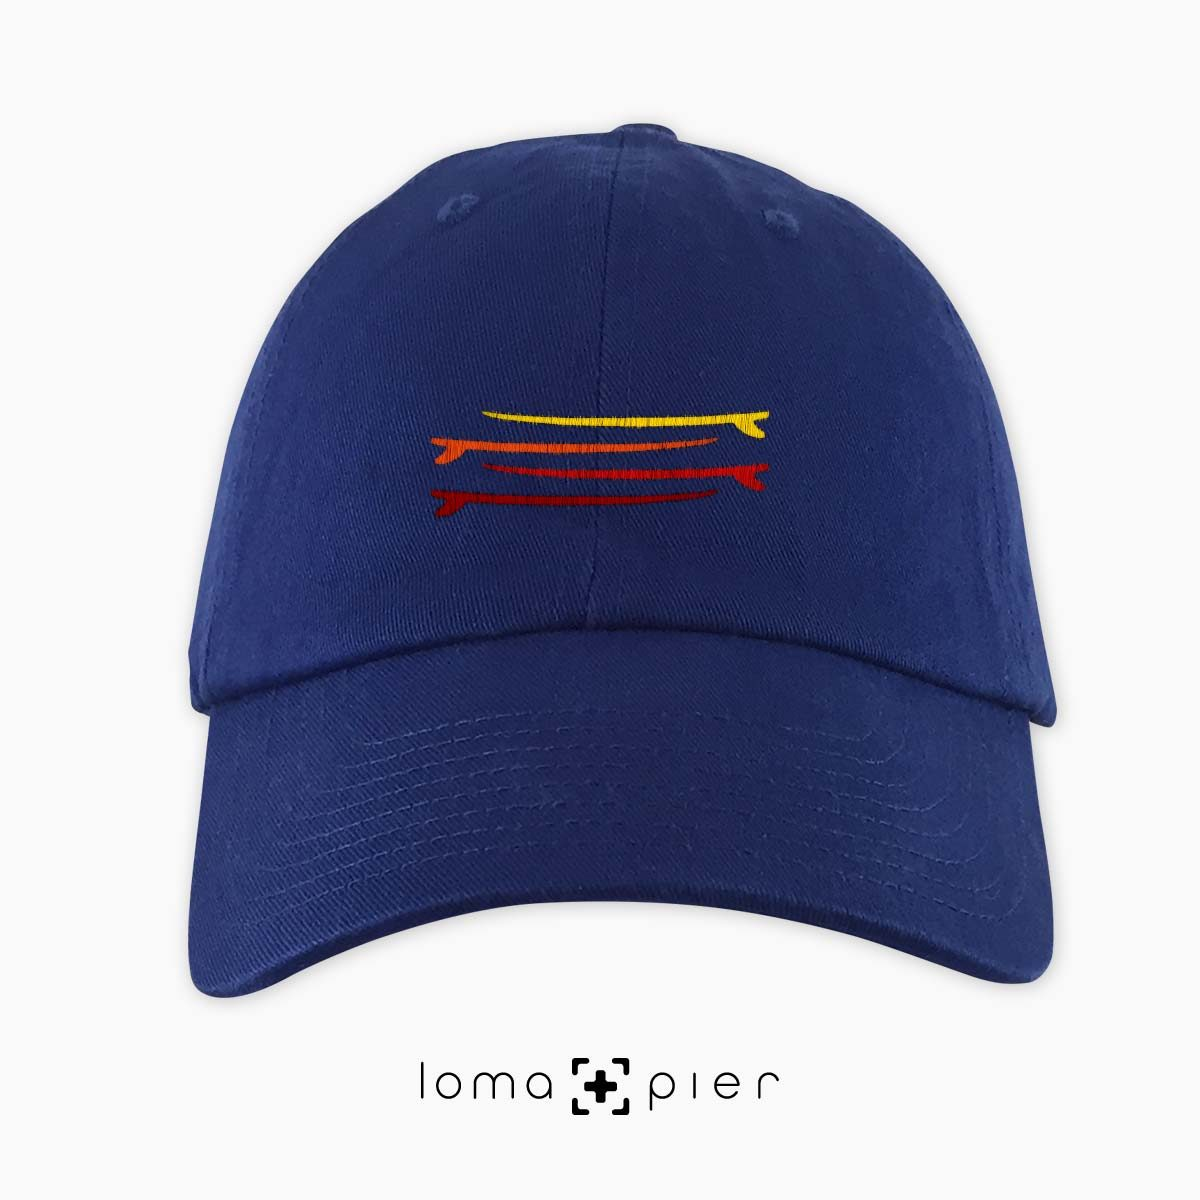 SURFBOARDS STACKED icon embroidered on a blue dad hat by loma+pier hat store made in the USA